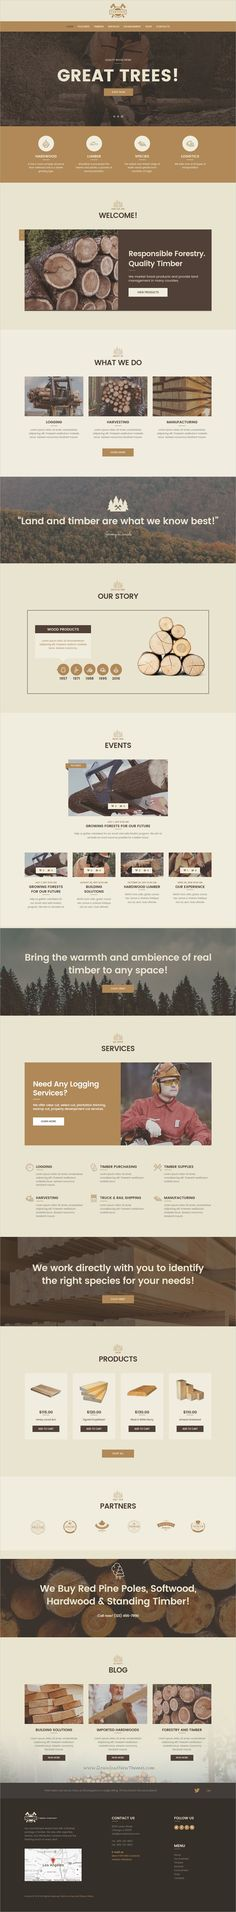 Fortunio is beautifully design 4in1 responsive #WordPress theme for #webdev timber company, #forestry or #wood crafters minimal websites download now➩ https://themeforest.net/item/fortunio-timber-forestry-wood-manufacture-wordpress-theme/17139960?ref=Datasata